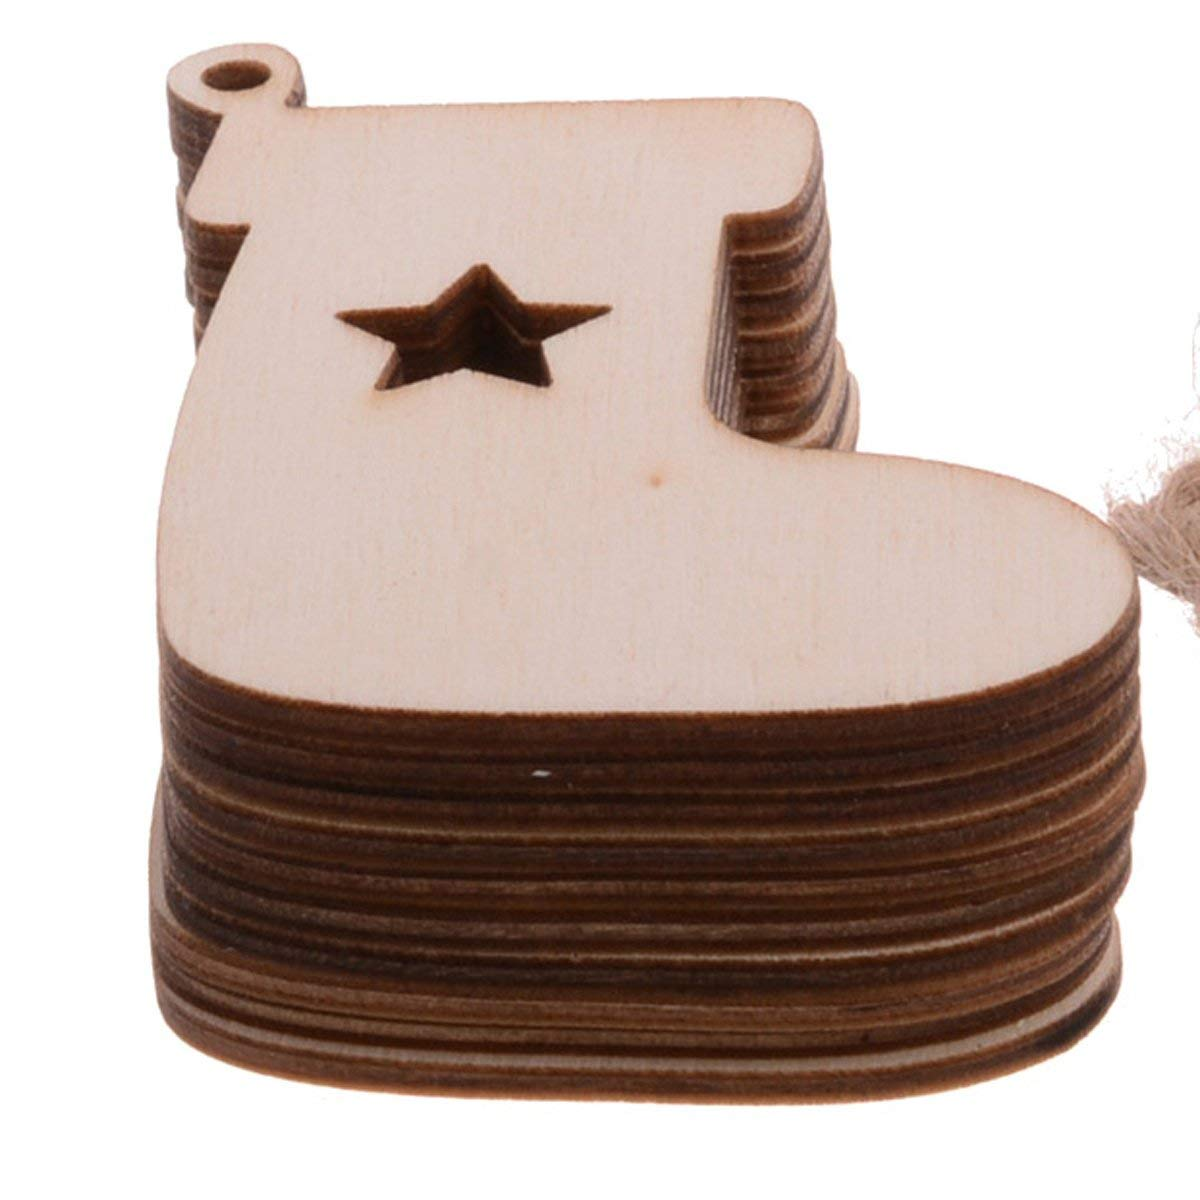 Pack Of 10 Wooden Stocking Boots Kids Crafts Christmas Tree Ornaments Hanging Decoration